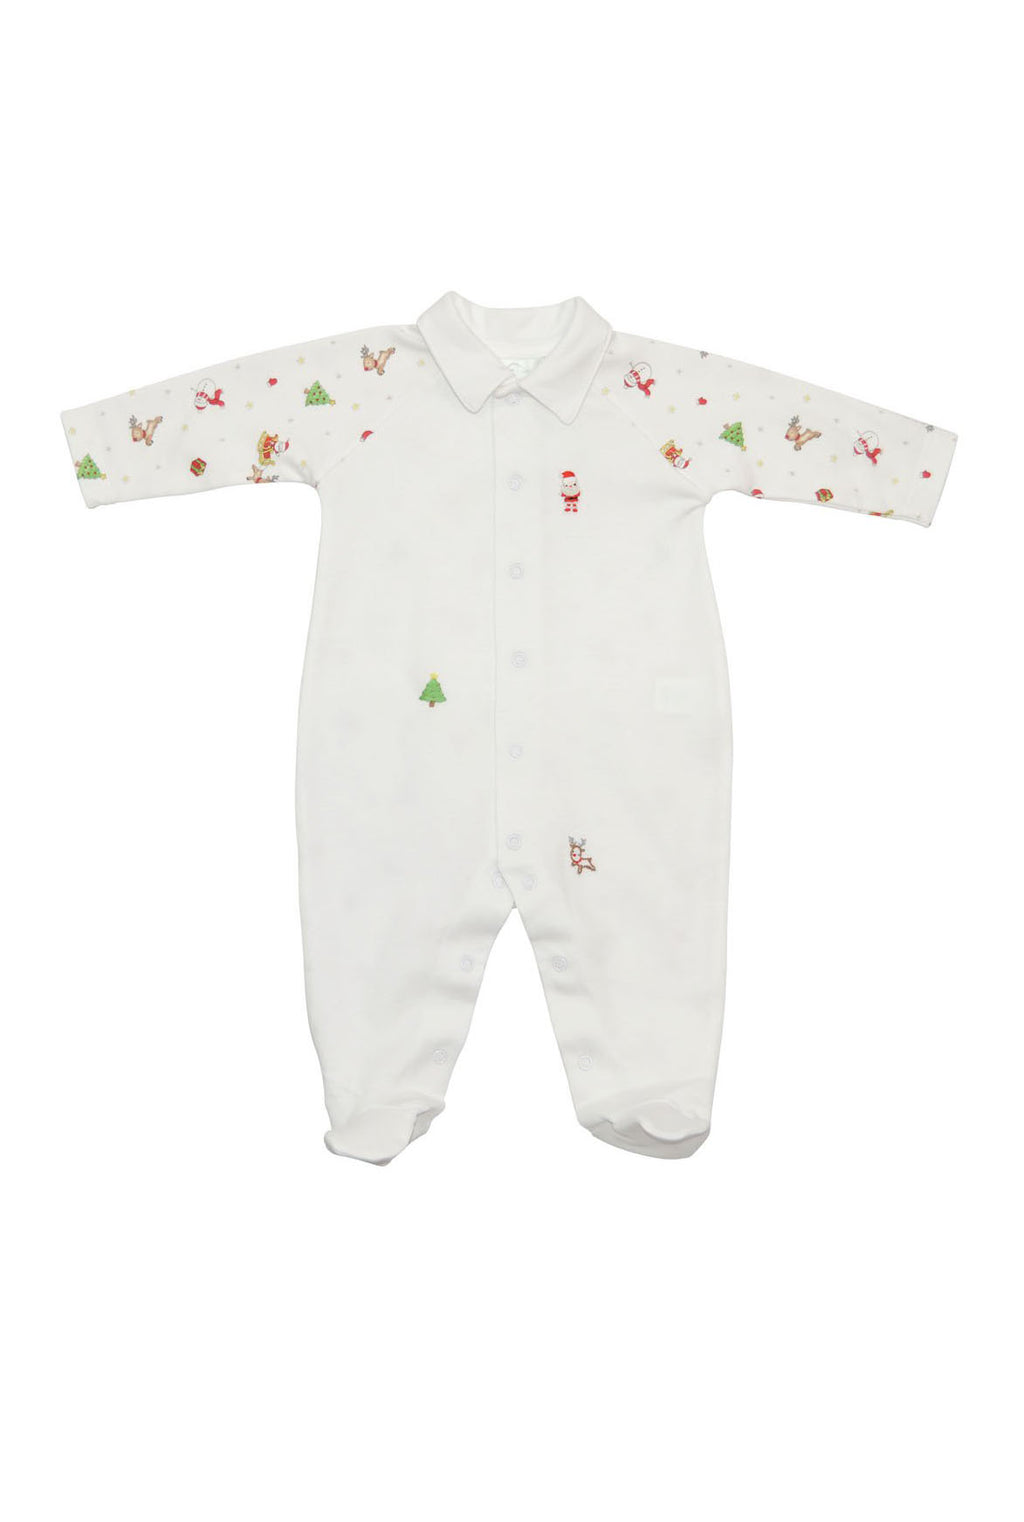 Baby Boy's Christmas Footie - Little Threads Inc. Children's Clothing